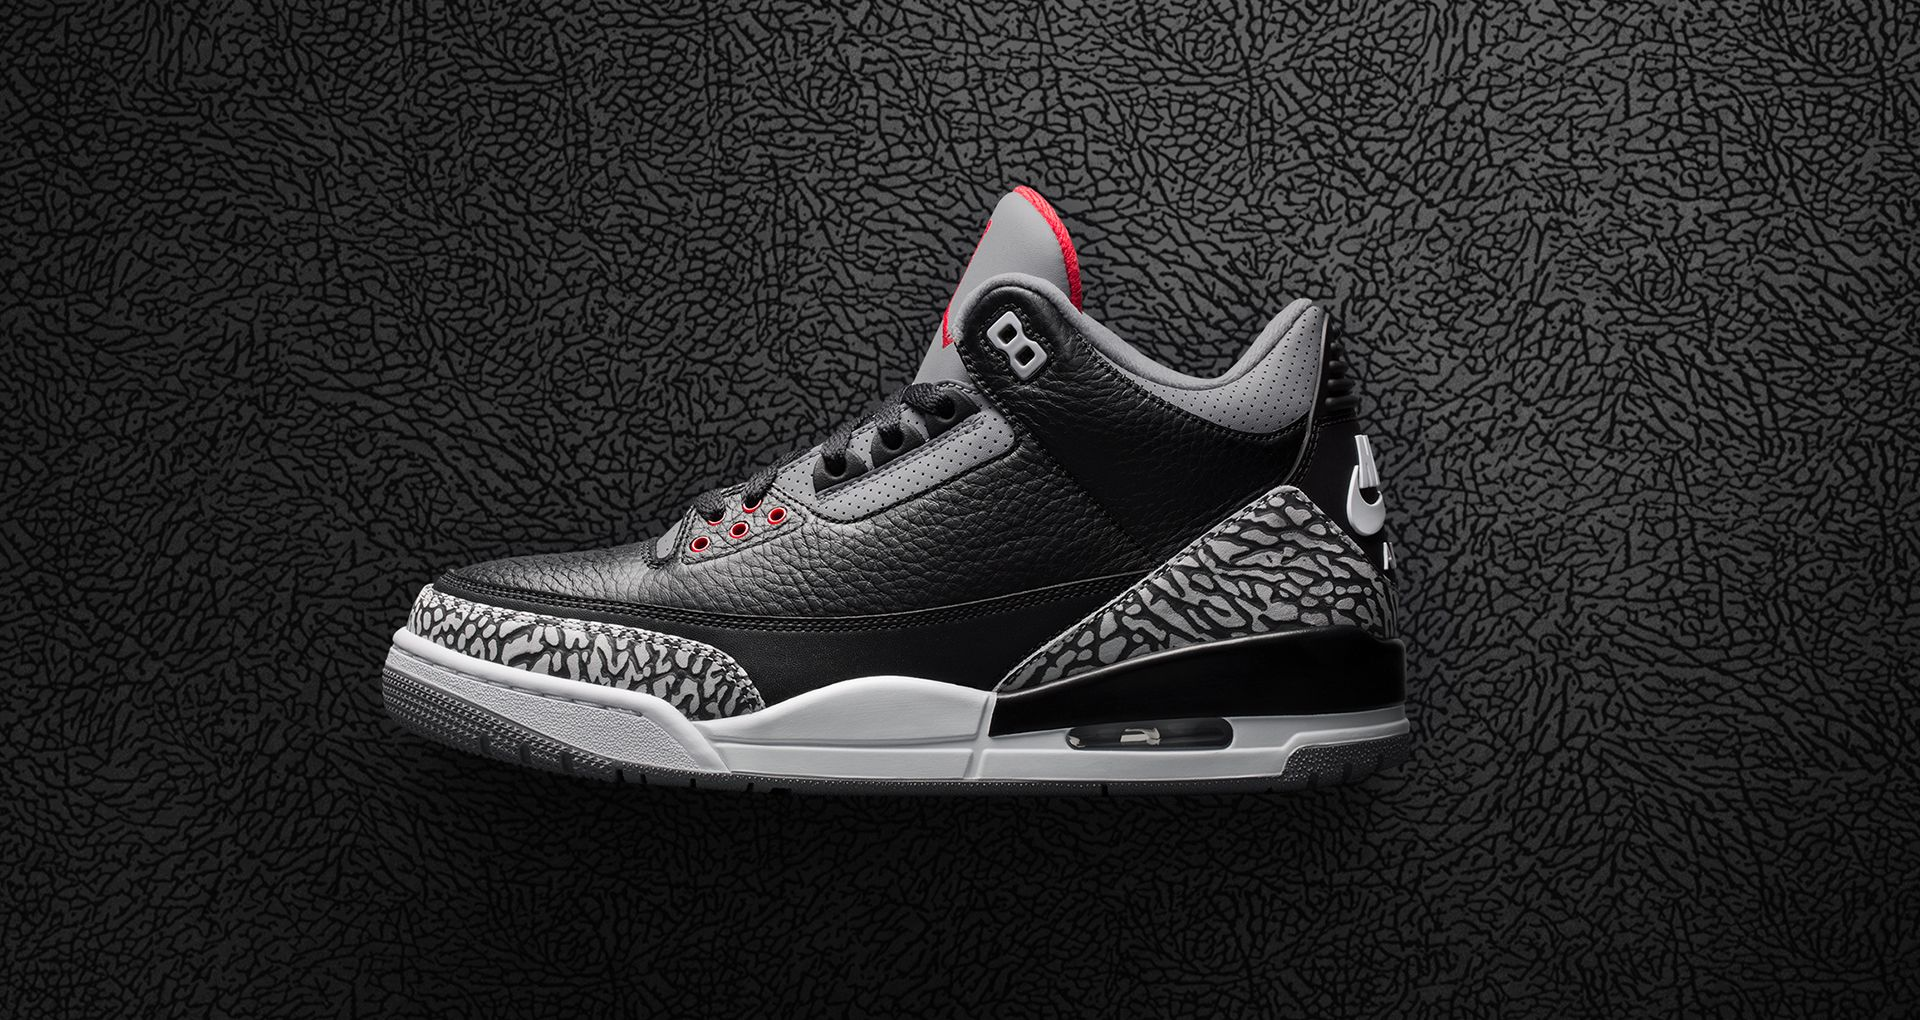 super popular b409d 8be39 Air Jordan 3 Retro OG  Black Cement  2018 Release Date